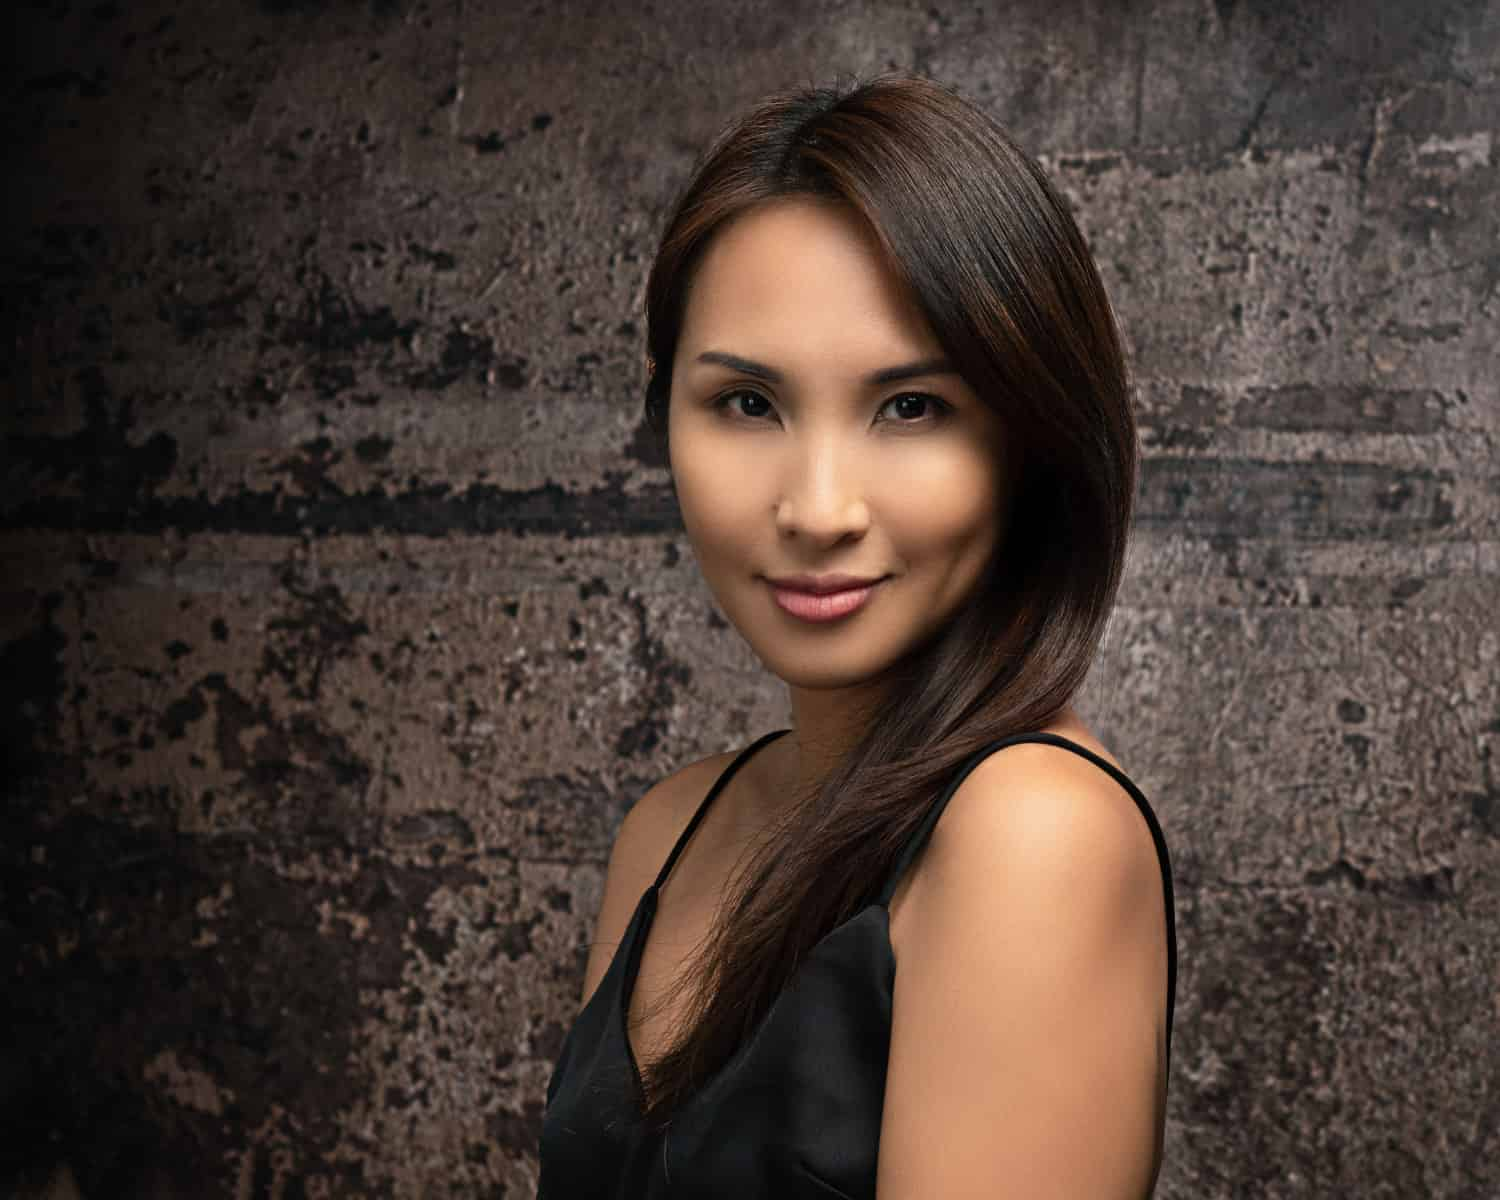 portrait photographer singapore a woman in a black top infront of a brick wall